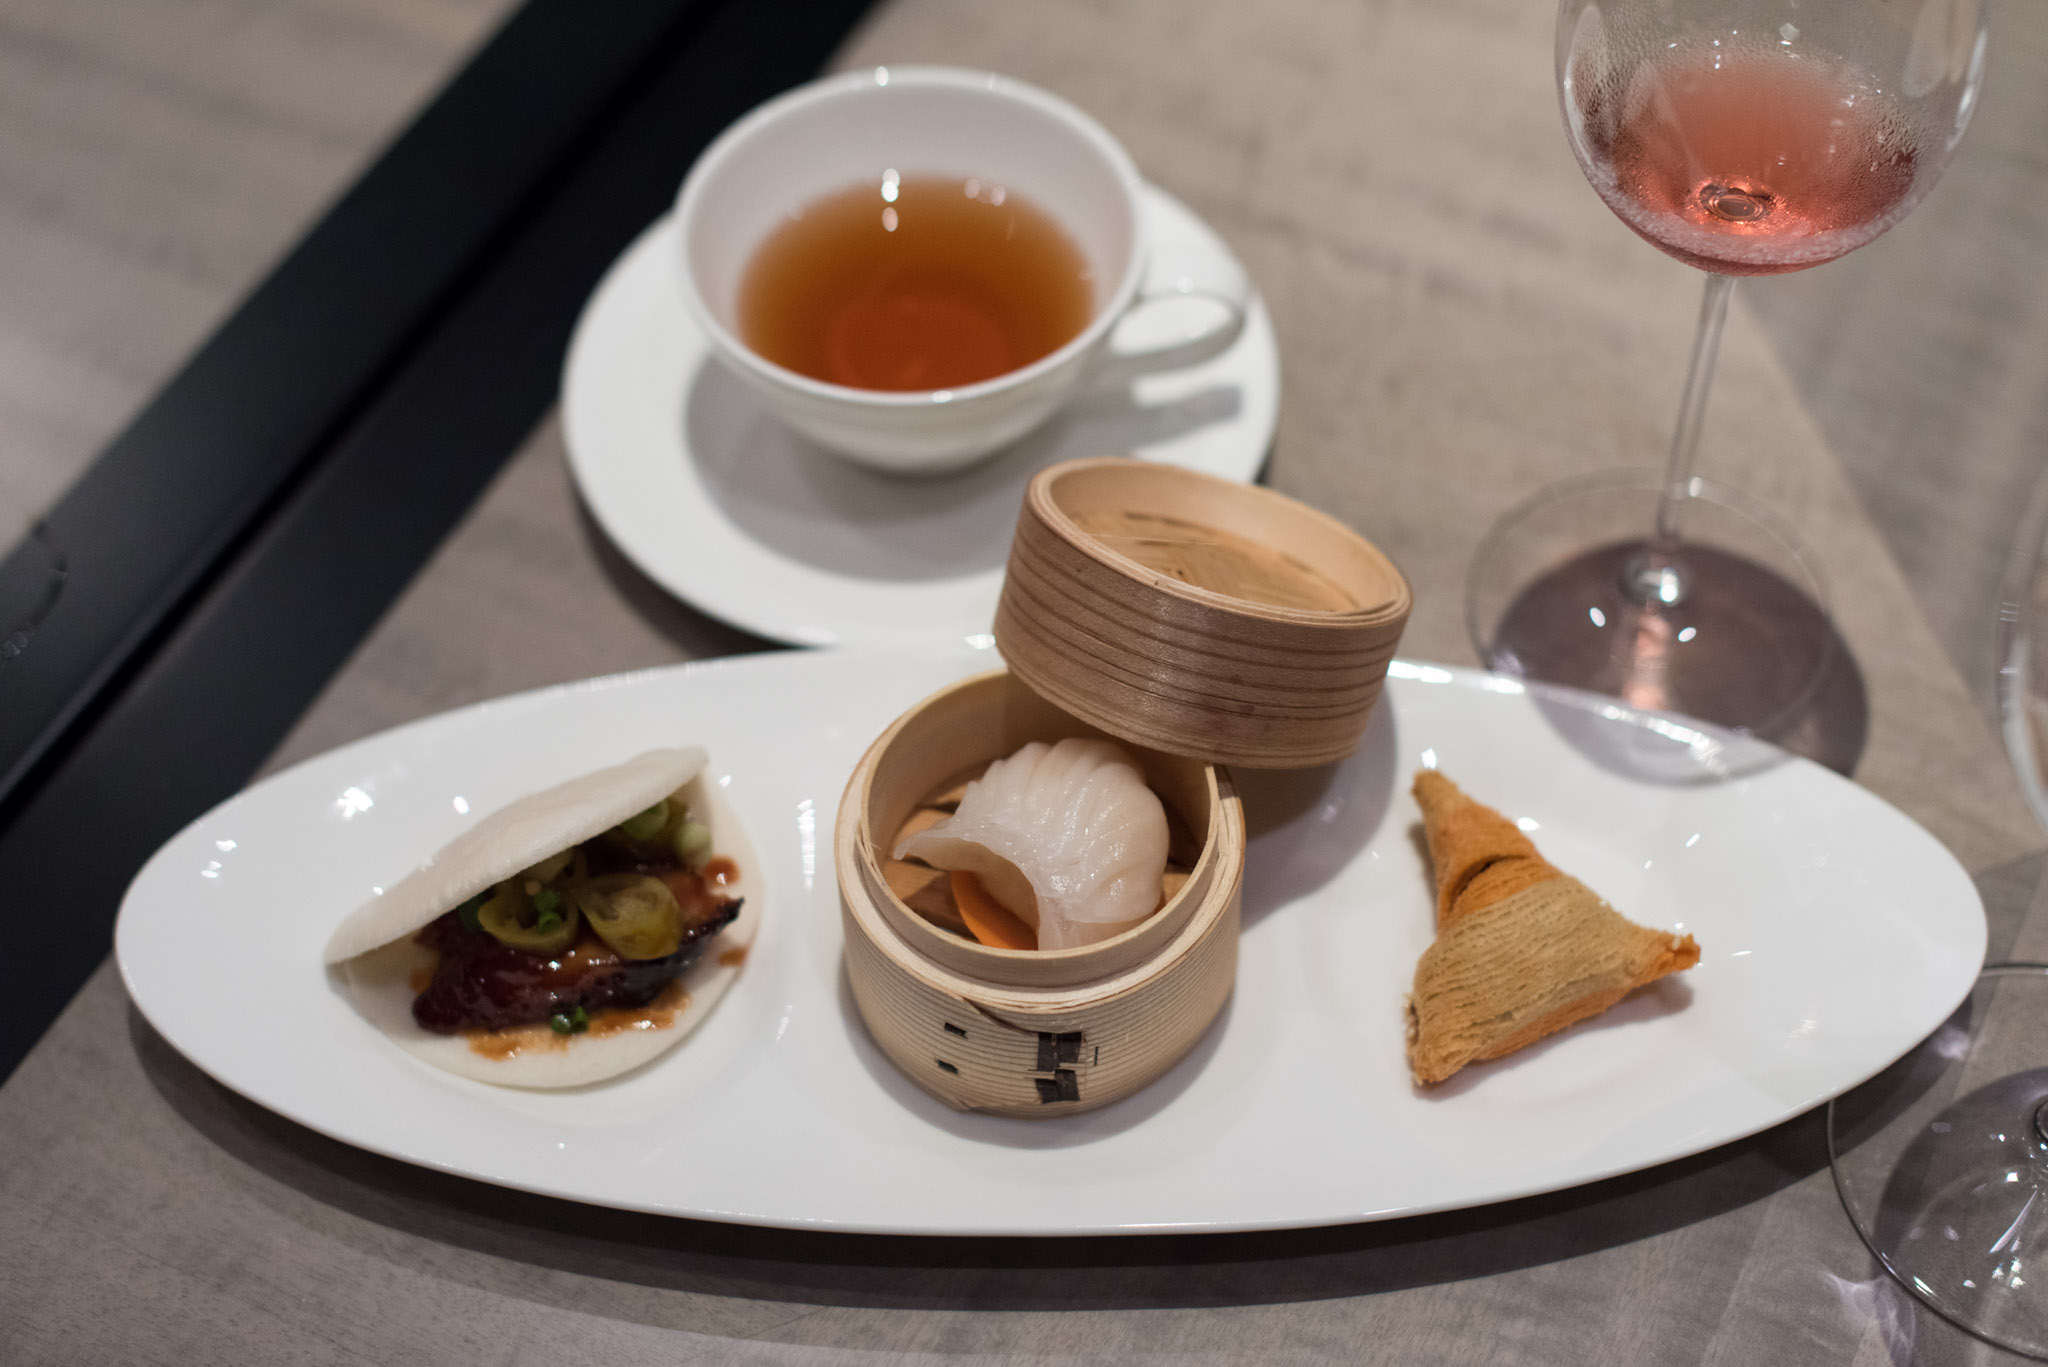 From Left: Char Siew Sliders with Homemade Pickled Green Chili (S$15++ per Serving), Steamed Shrimp Dumpling with Mushroom (S$2++ per Piece) and Crispy Flaky Pastry with Black Pepper Beef (S$3++ per Piece)  Jiang-Nan Chun - Four Seasons Hotel Singapore